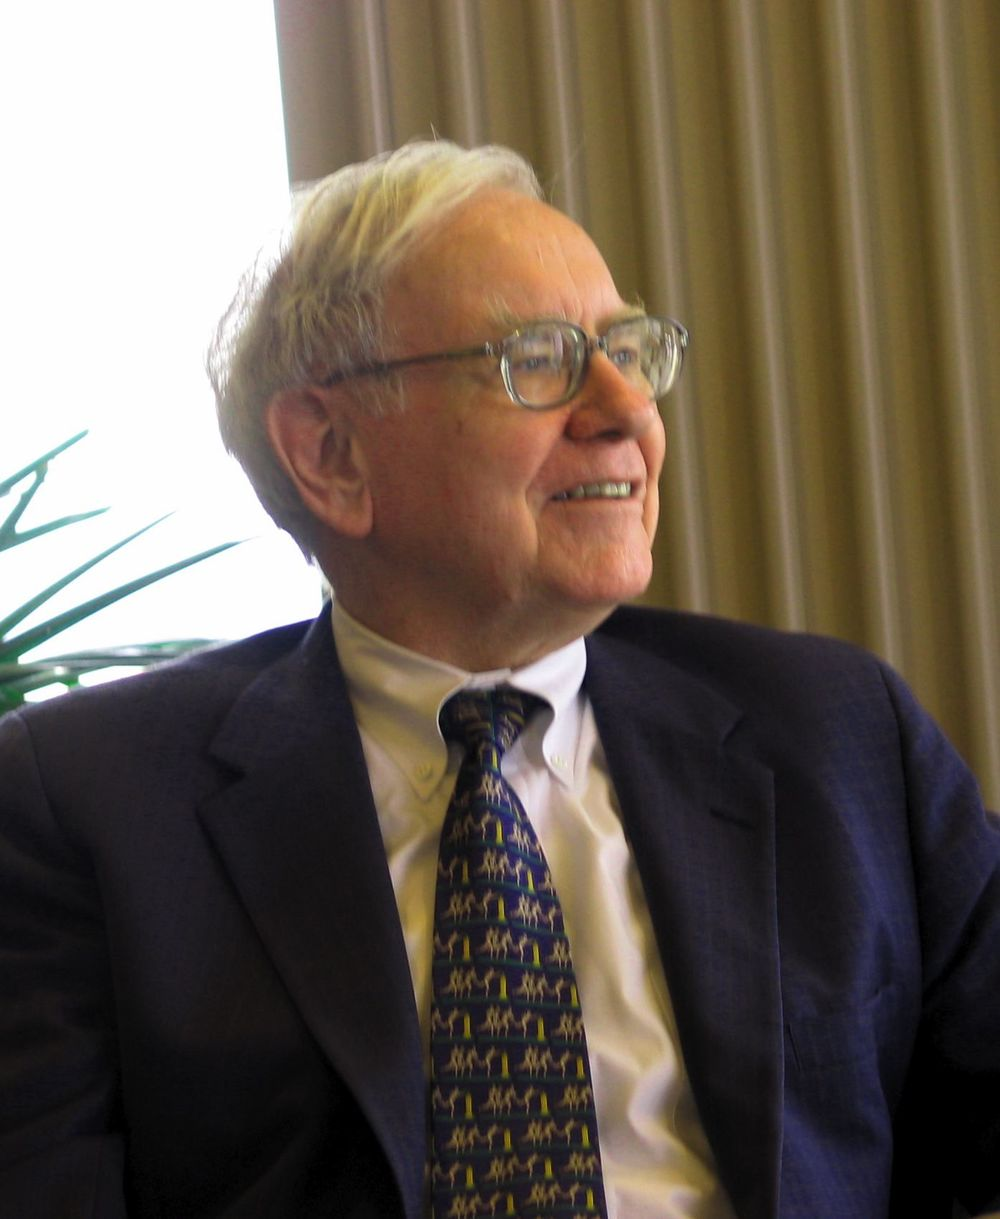 Warren Buffett. Credit: Mark Hirschey.